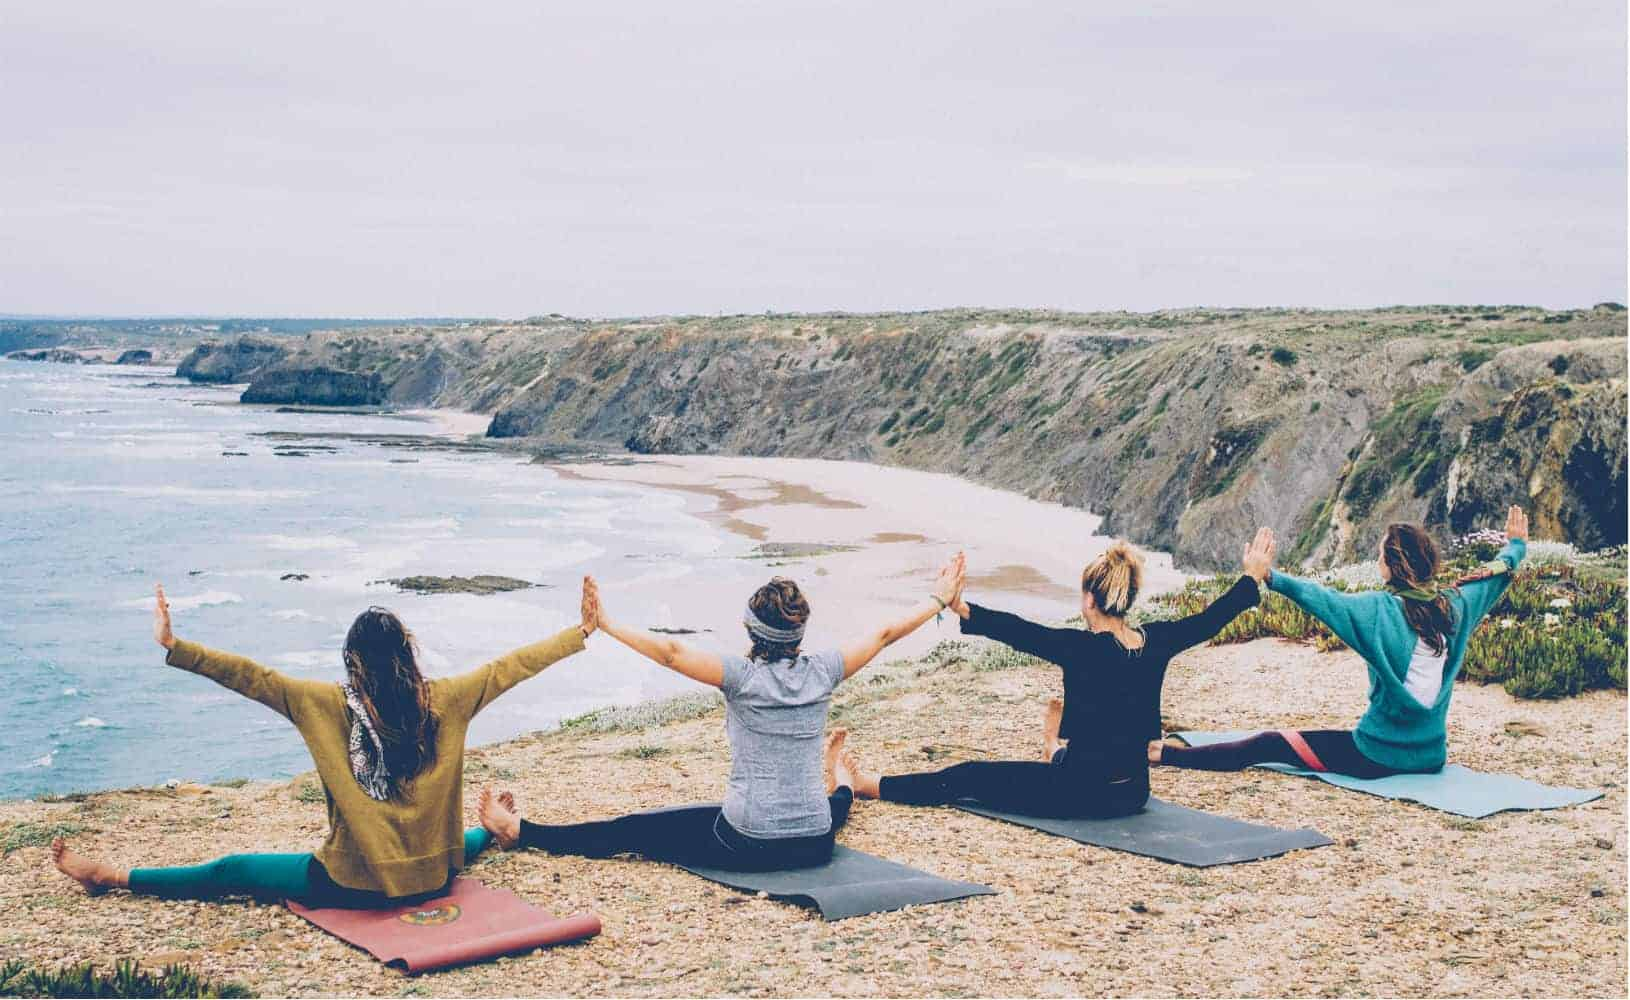 Yoga vakantie in Portugal bij Surflife Atlantic Riders